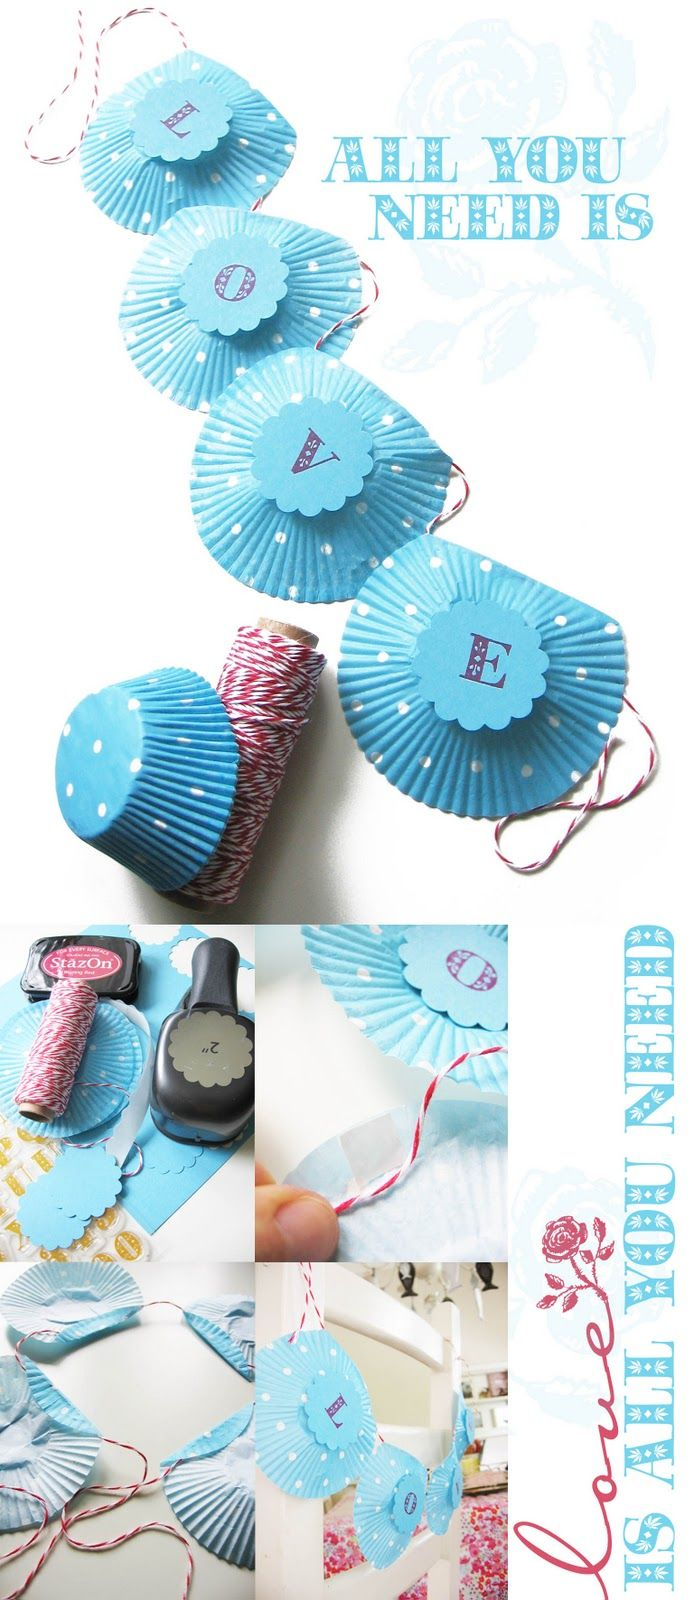 Cupcake Garland cute idea for any type of party. You could also make flowers using the same colour cupcakes and then use them for your actual edible cupcakes. And before you know it you have a theme